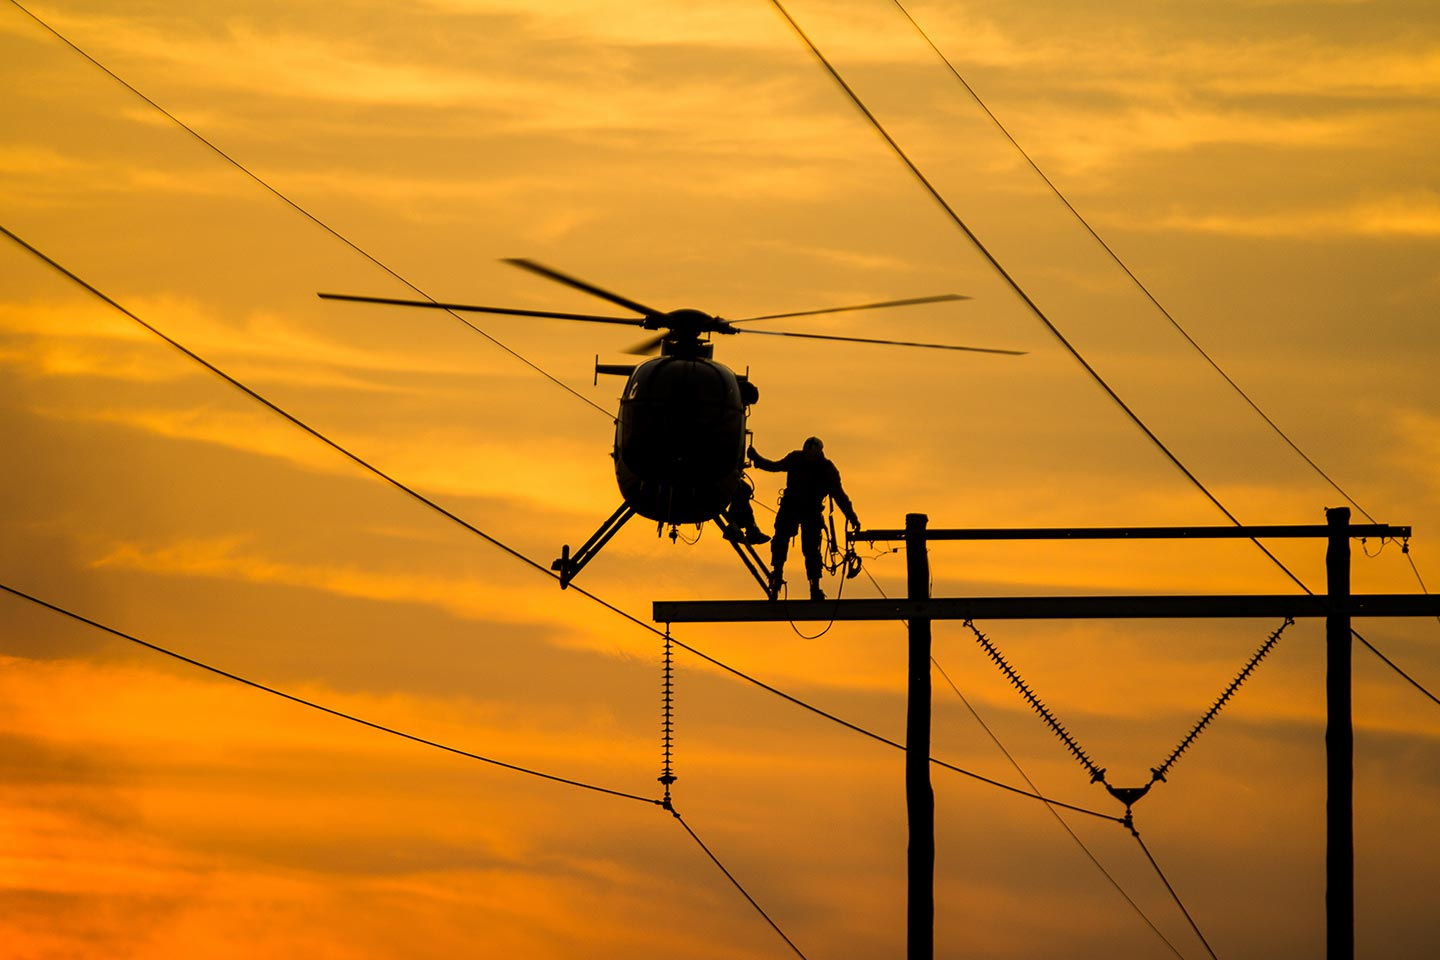 Philadelphia Transmission Line Helicopter Services